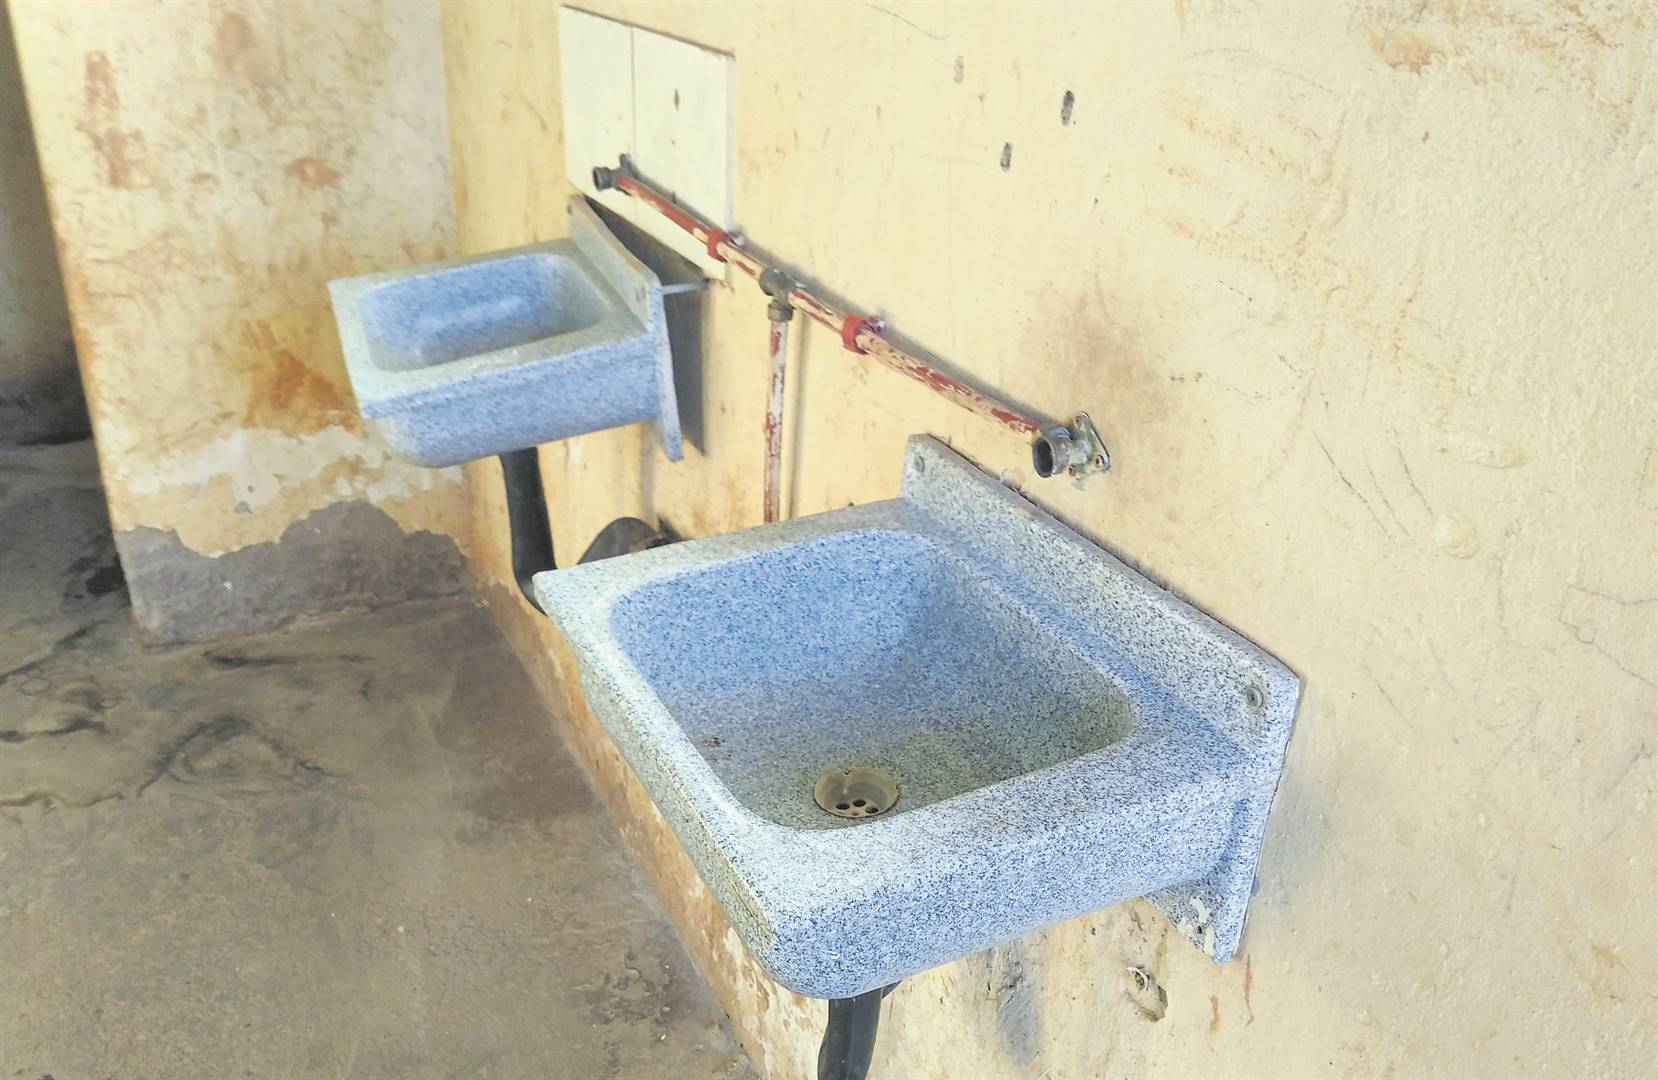 With no taps on the basins in a toilet at one local school, excrement is smeared on the adjacent wall.PHOTO: kerushun pillay